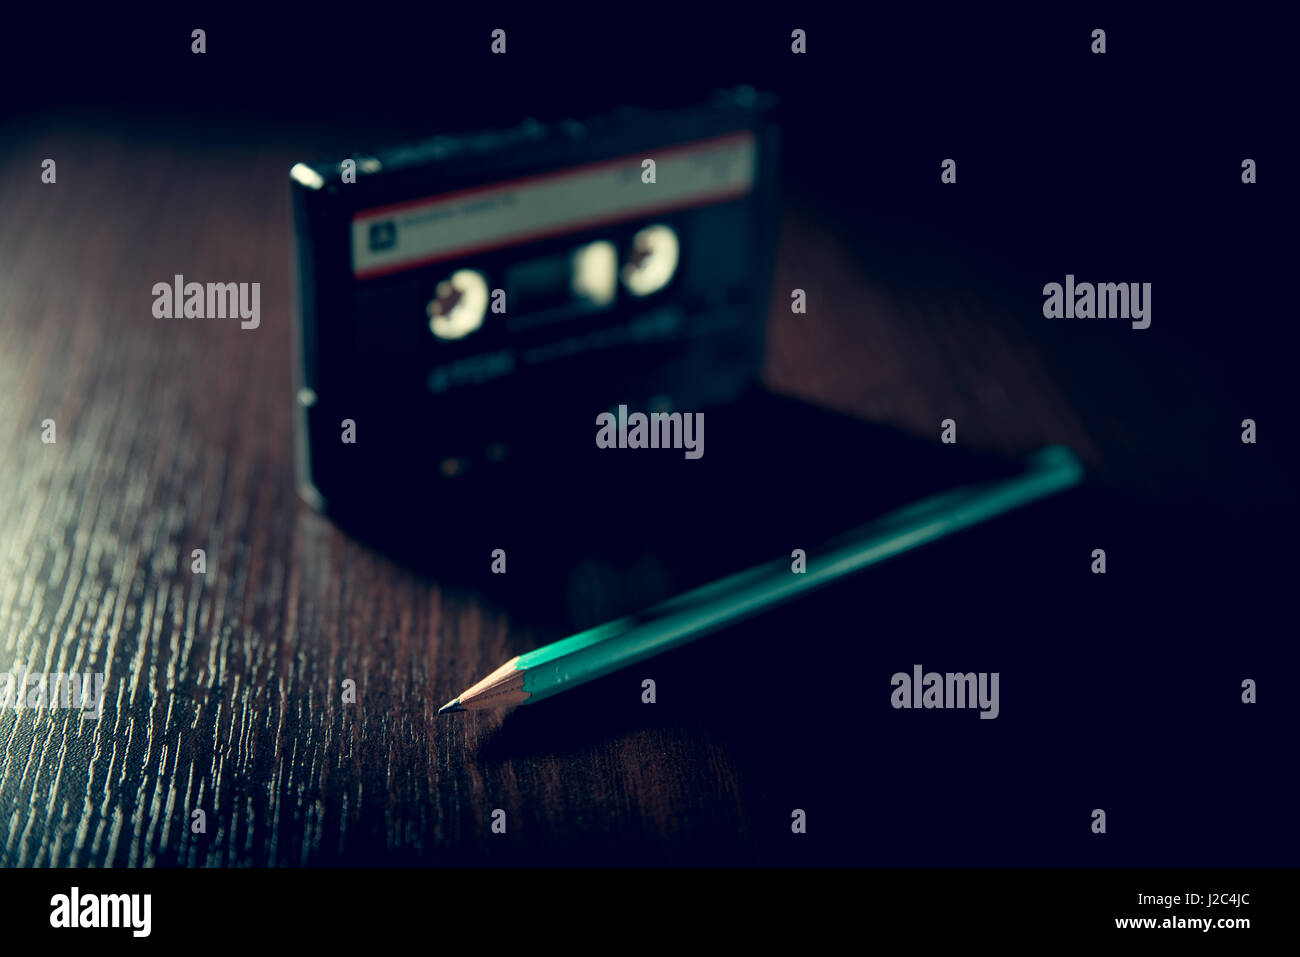 Old-fashioned cassette tape on the dark surface and green pencil - Stock Image